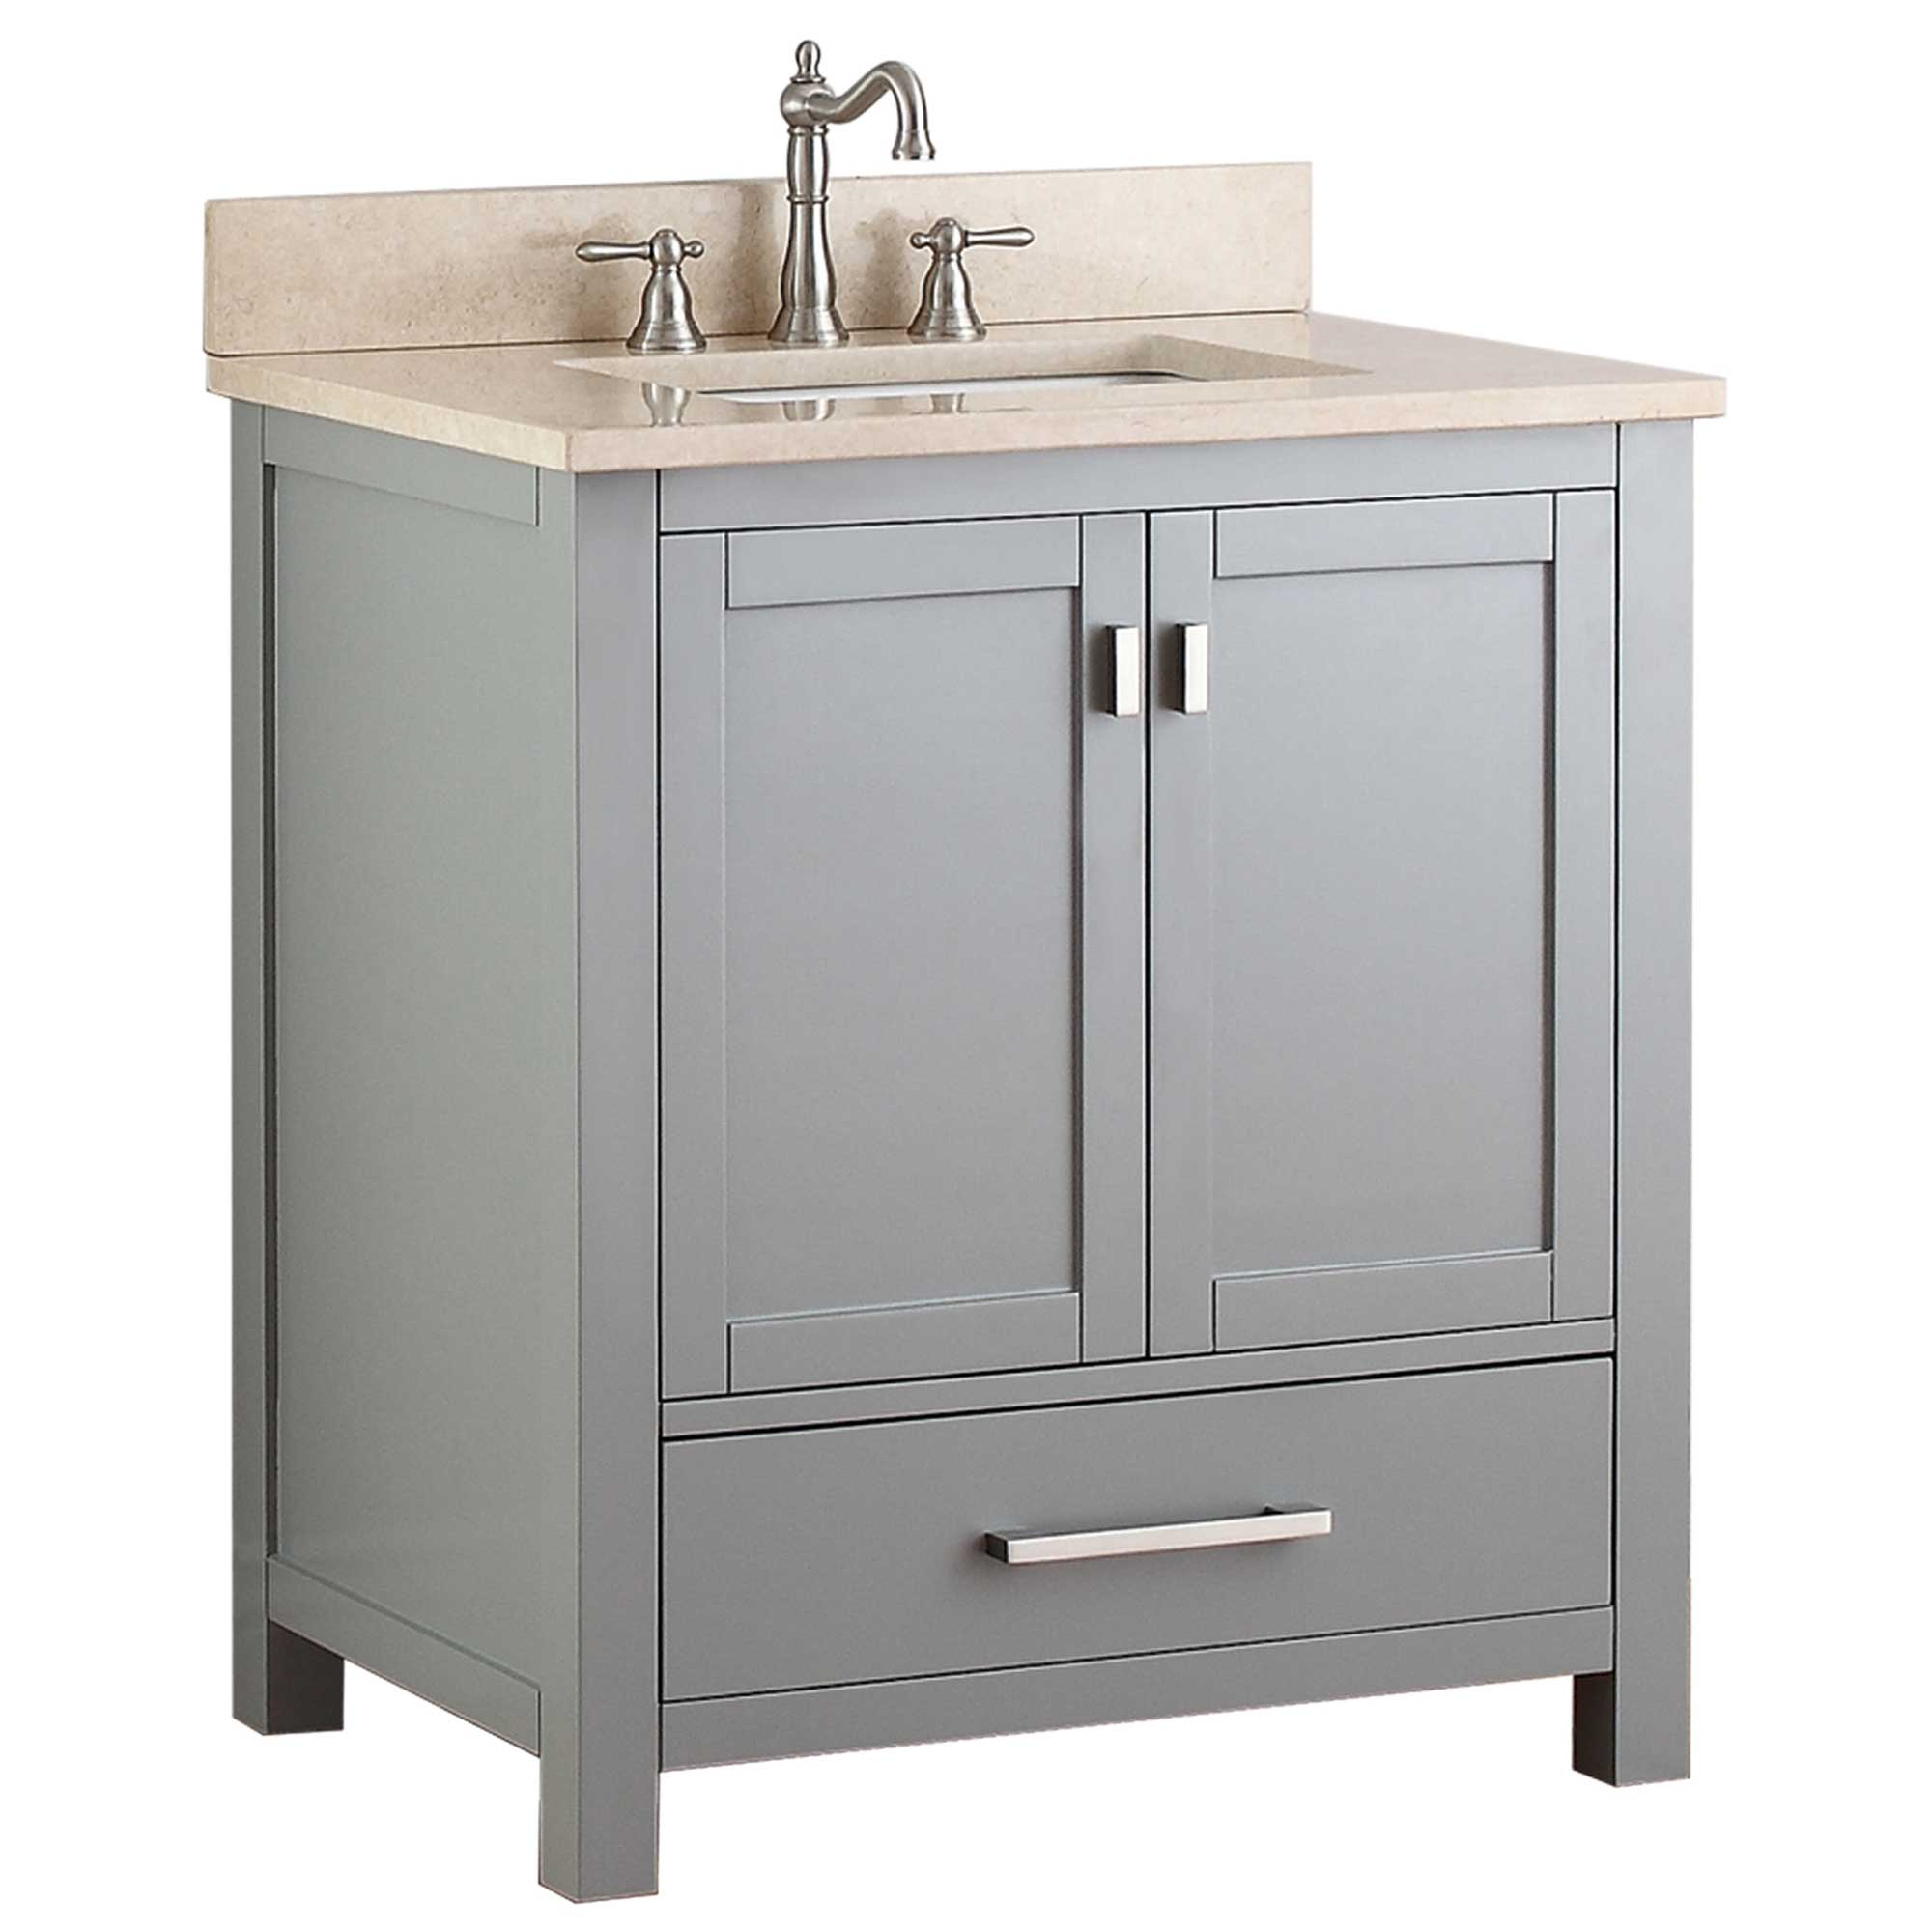 "31"" Toscana Single Bath Vanity - Chilled Gray with Galala Beige Marble Top"